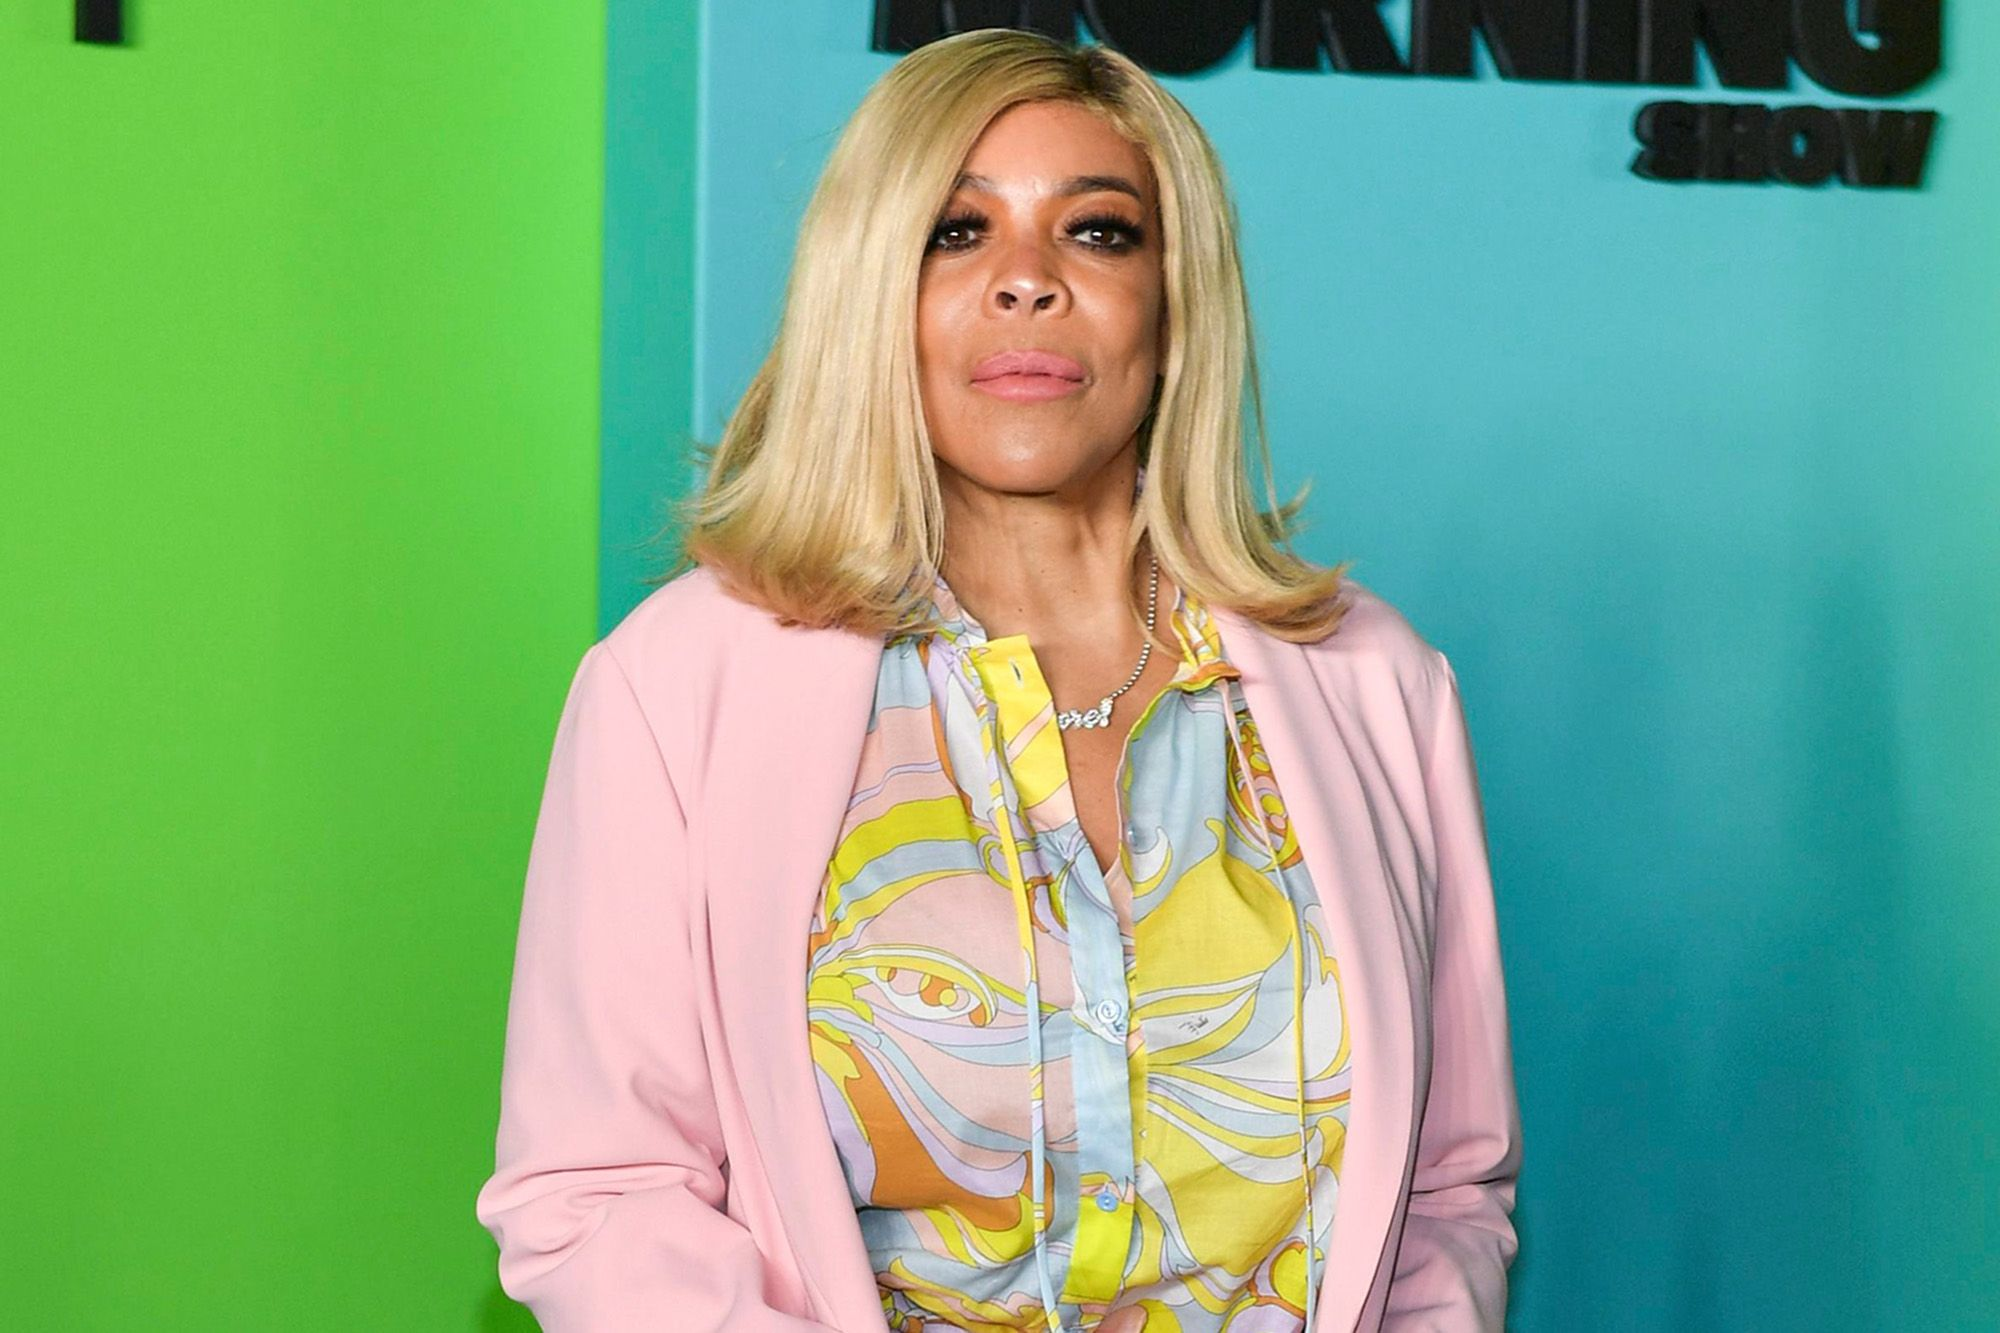 williams-fans-are-not-getting-the-great-news-that-they-expected-her-return-to-the-show-is-pushed-back-due-to-her-medical-issues-wendy-williams-show-return-is-pushed-back-she-still-has-medical-probl